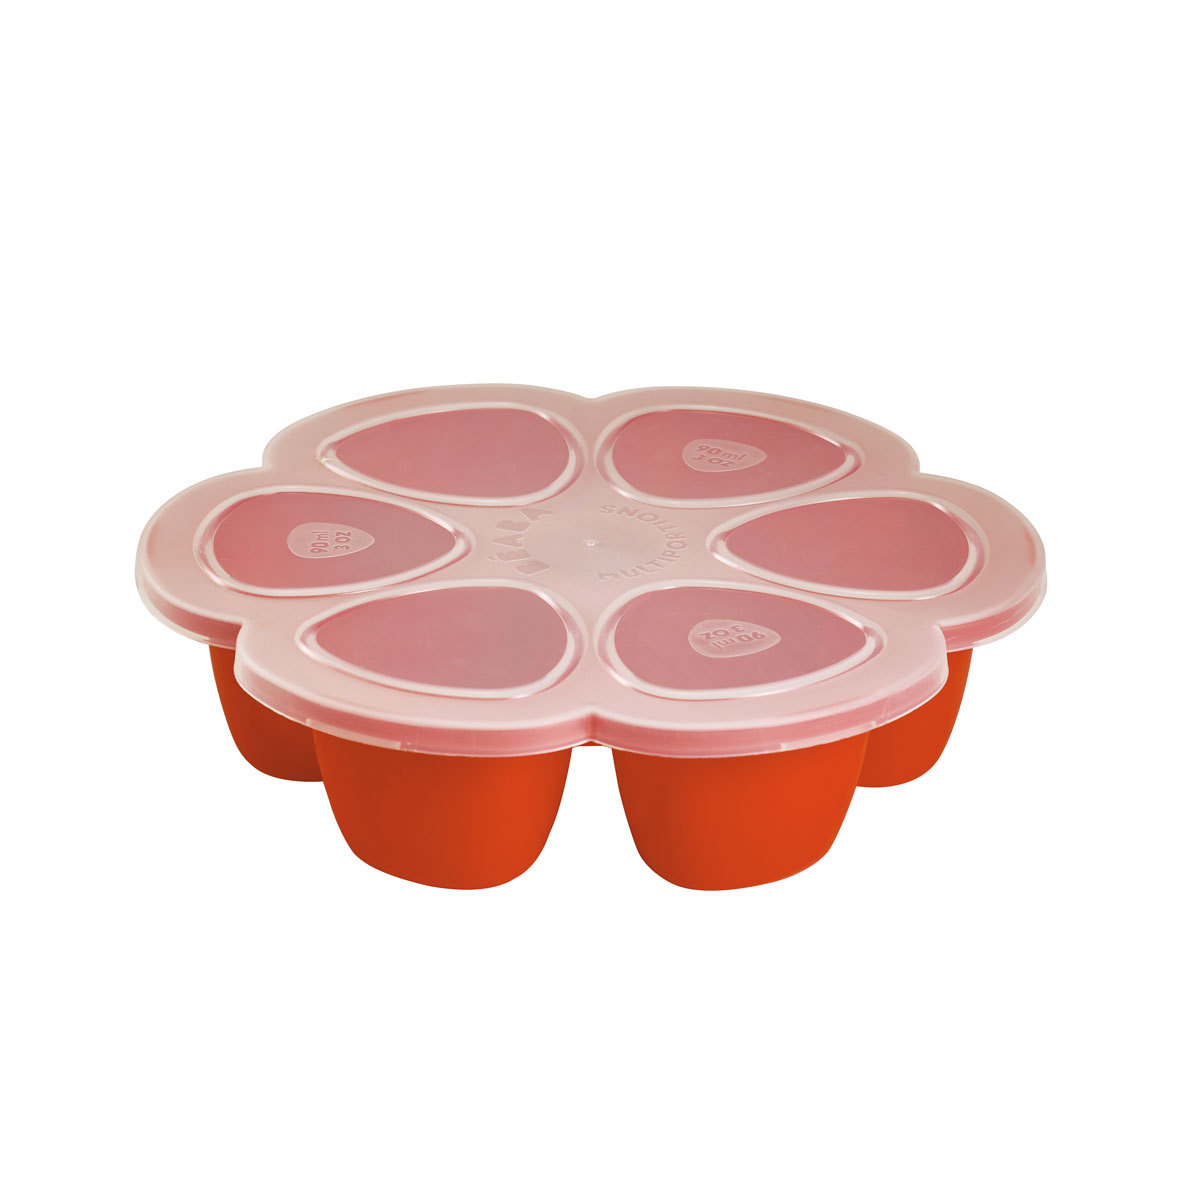 Vaisselle & Couvert Multi Portions Silicone 6 x 150 ml - Paprika Multi Portions Silicone 6 x 150 ml - Paprika